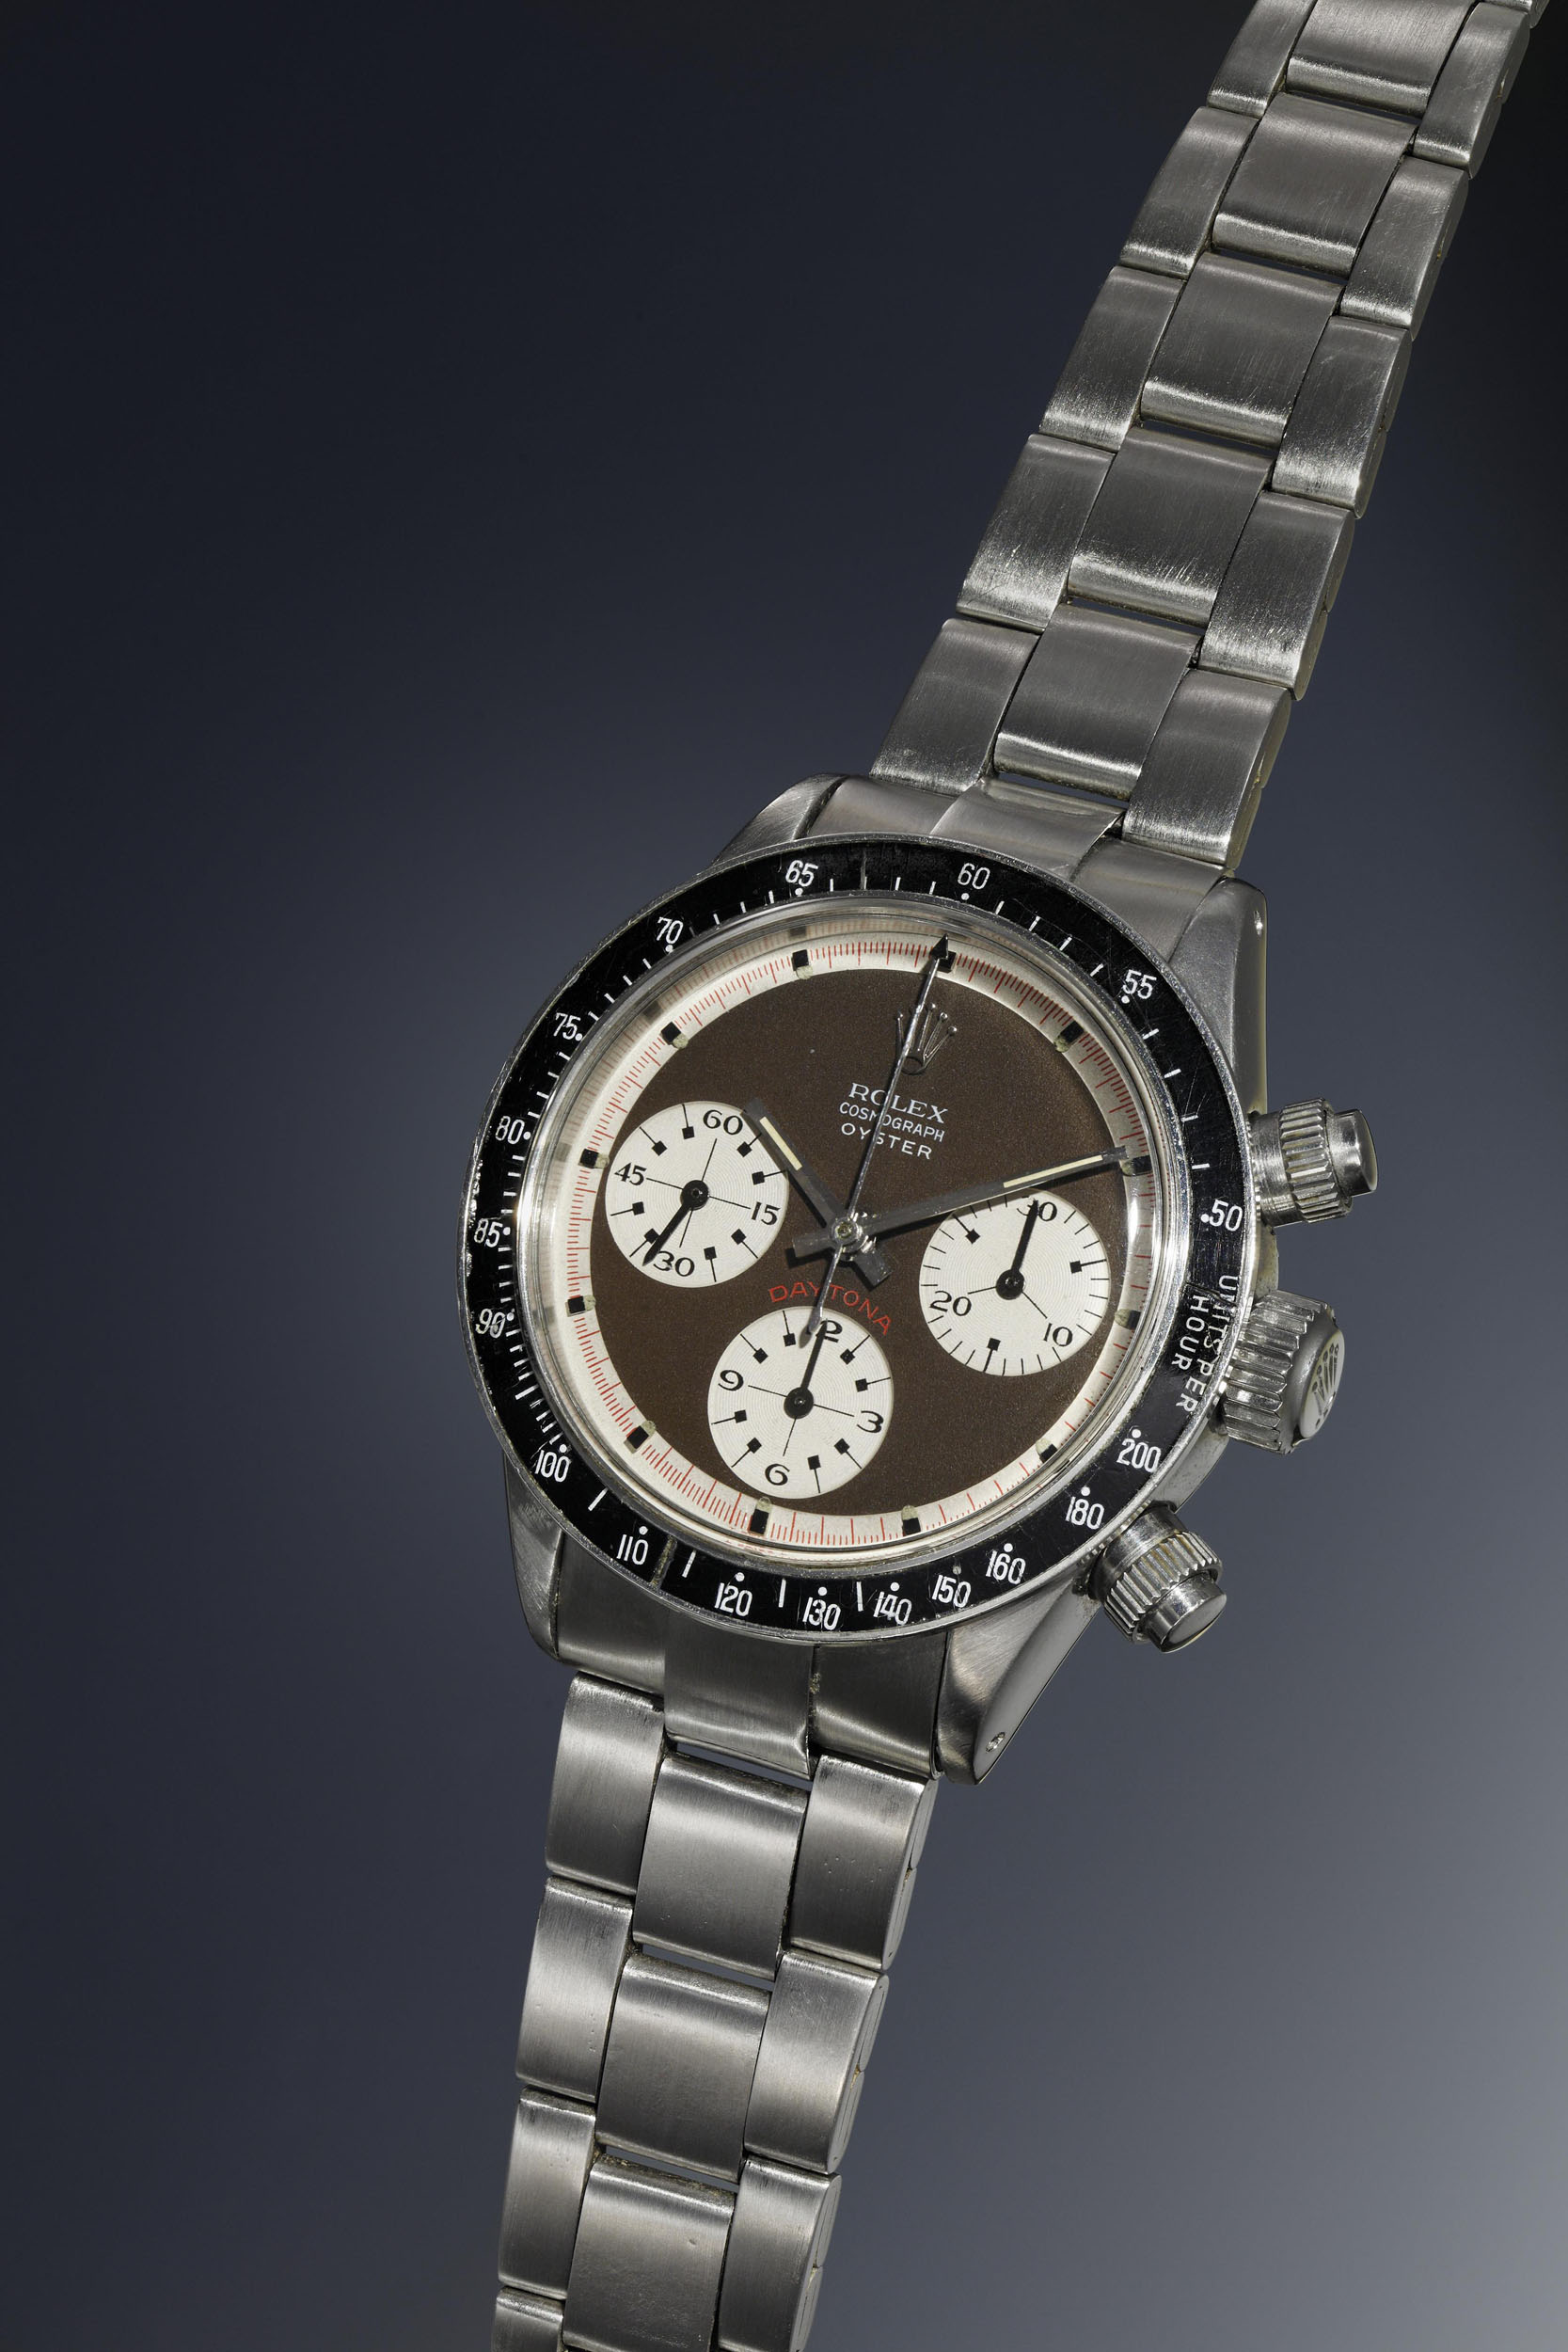 "2-Rolex Cosmograph Daytona ""Paul Newman Oyster Sotto"", 6263, stamped inside caseback 6239, Stainless steel, 1969"